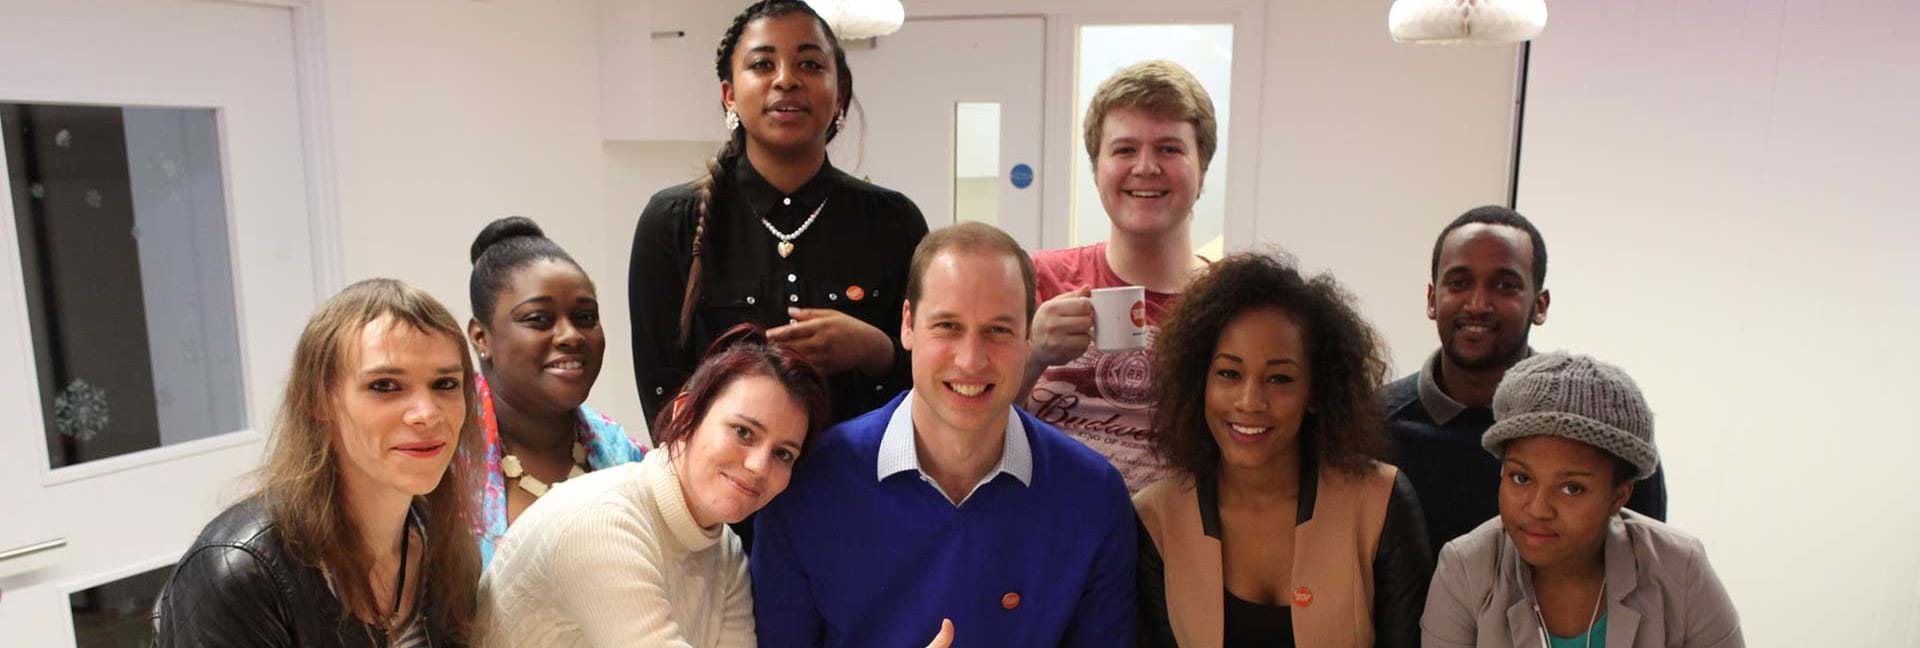 HRH The Duke of Cambridge with Centrepoint young people.